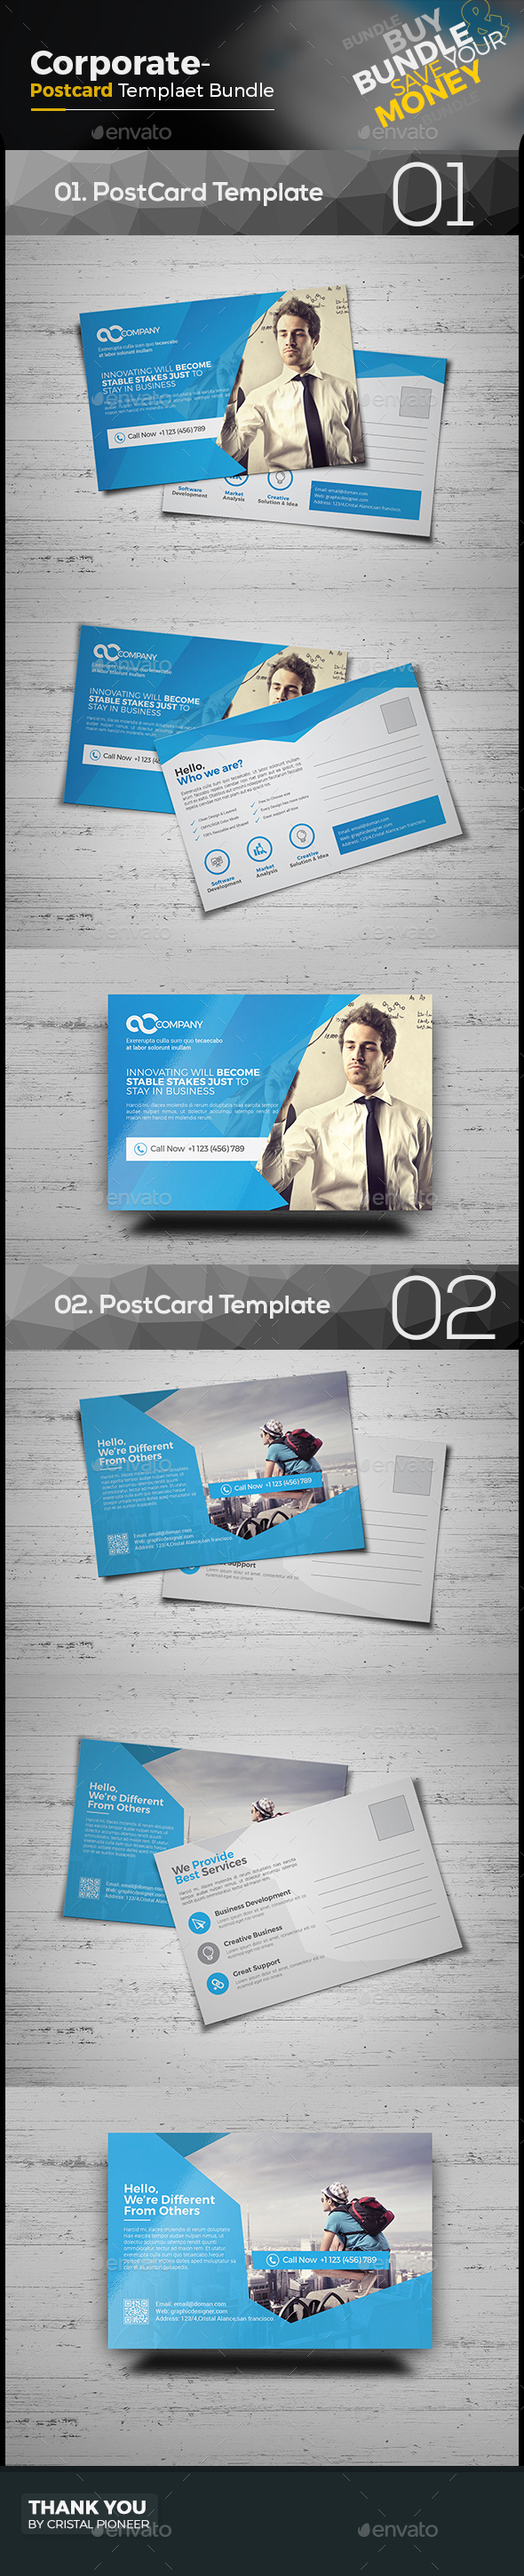 Consulting Postcard Graphics, Designs & Templates